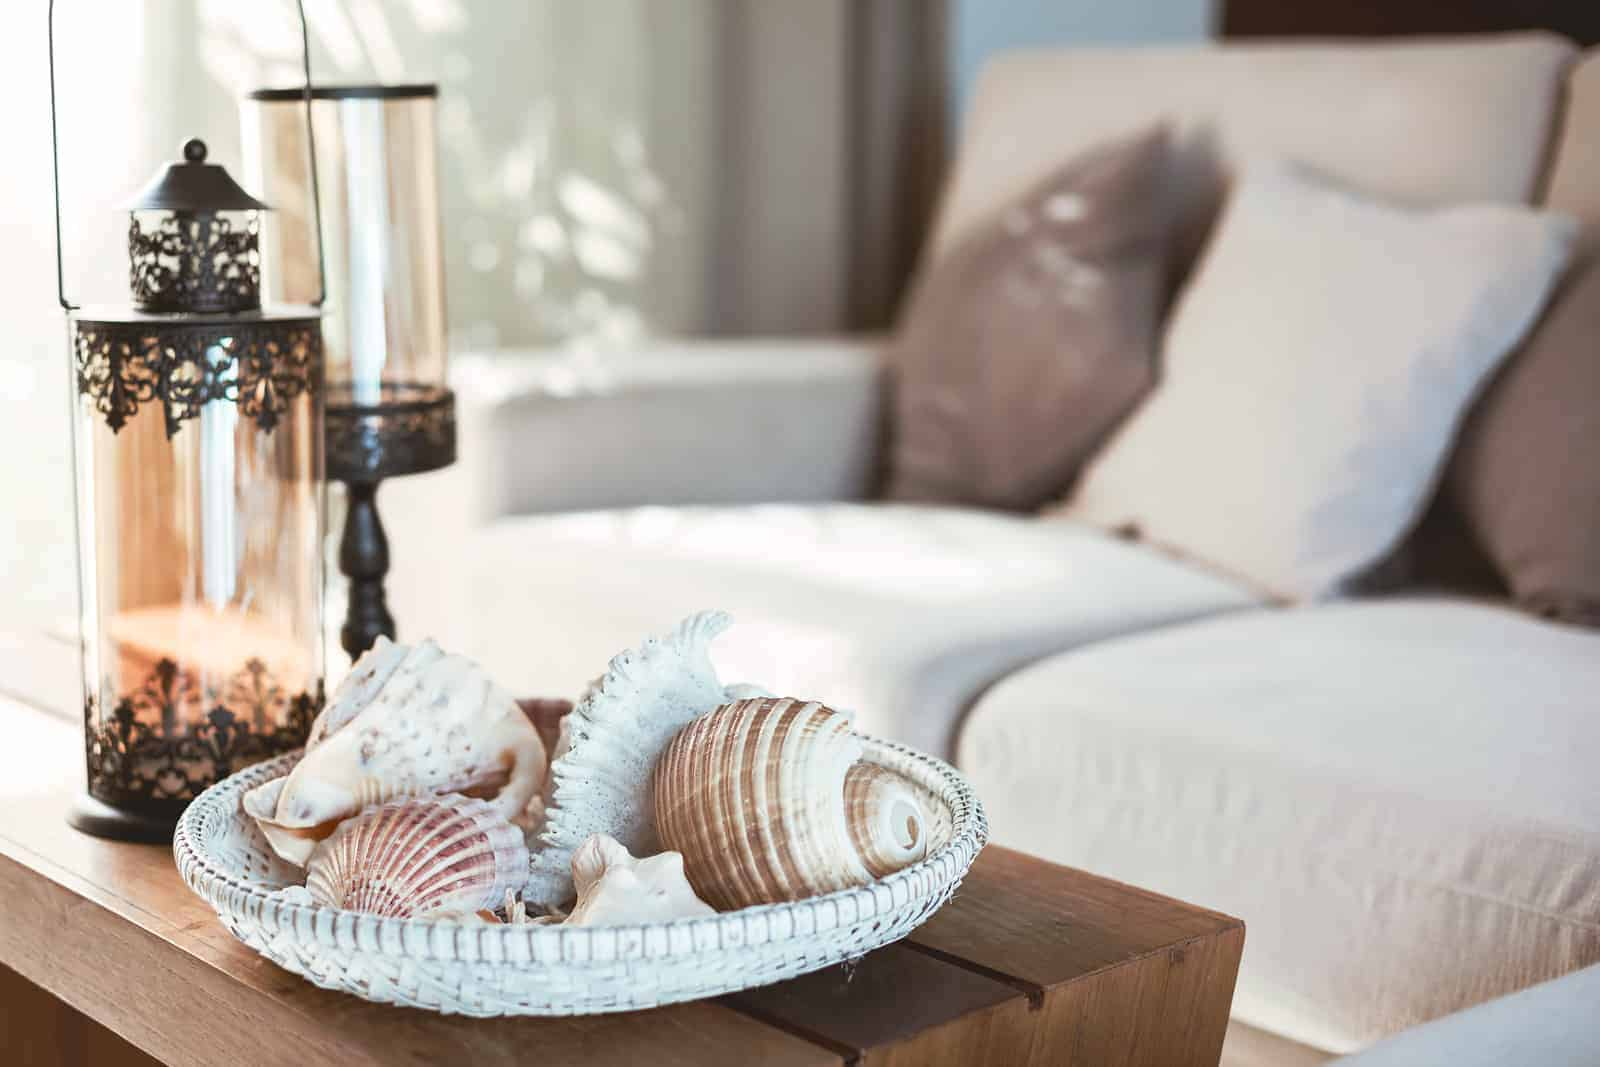 Seashells on coffee table as part of interior home decor for summer